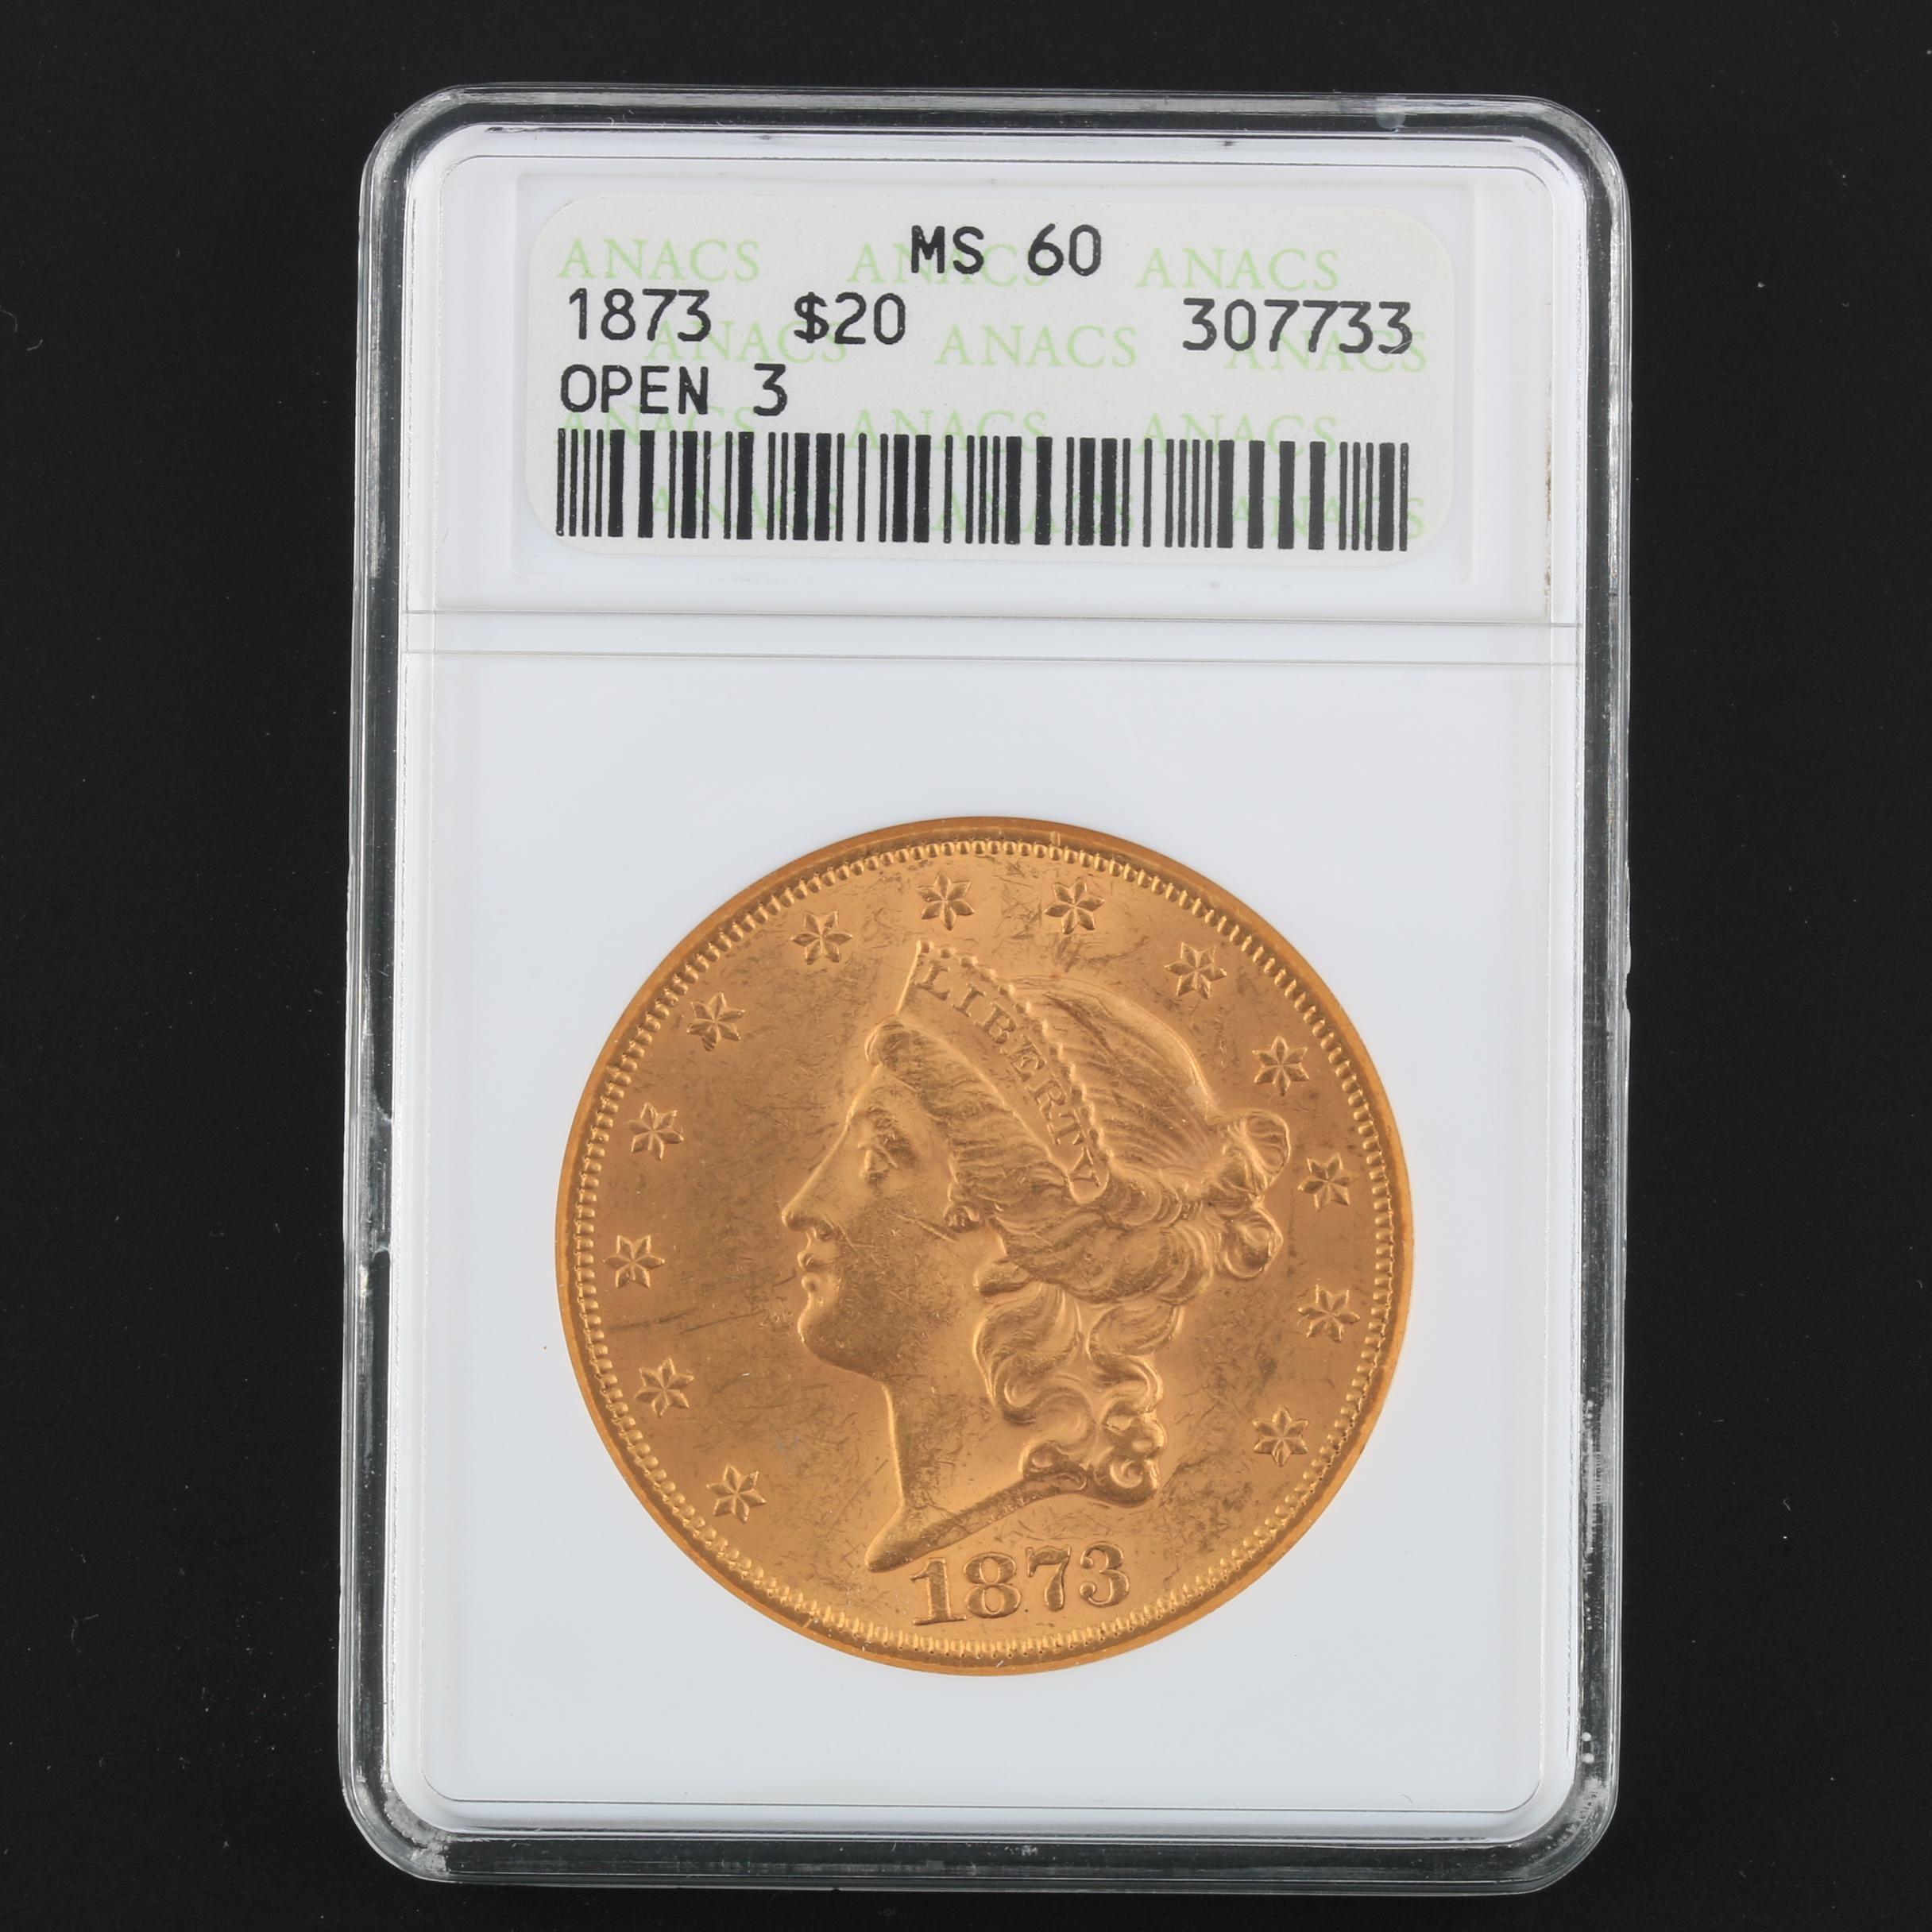 ANACS Graded MS60 1873 Liberty Head Open 3 Variety Gold Double Eagle